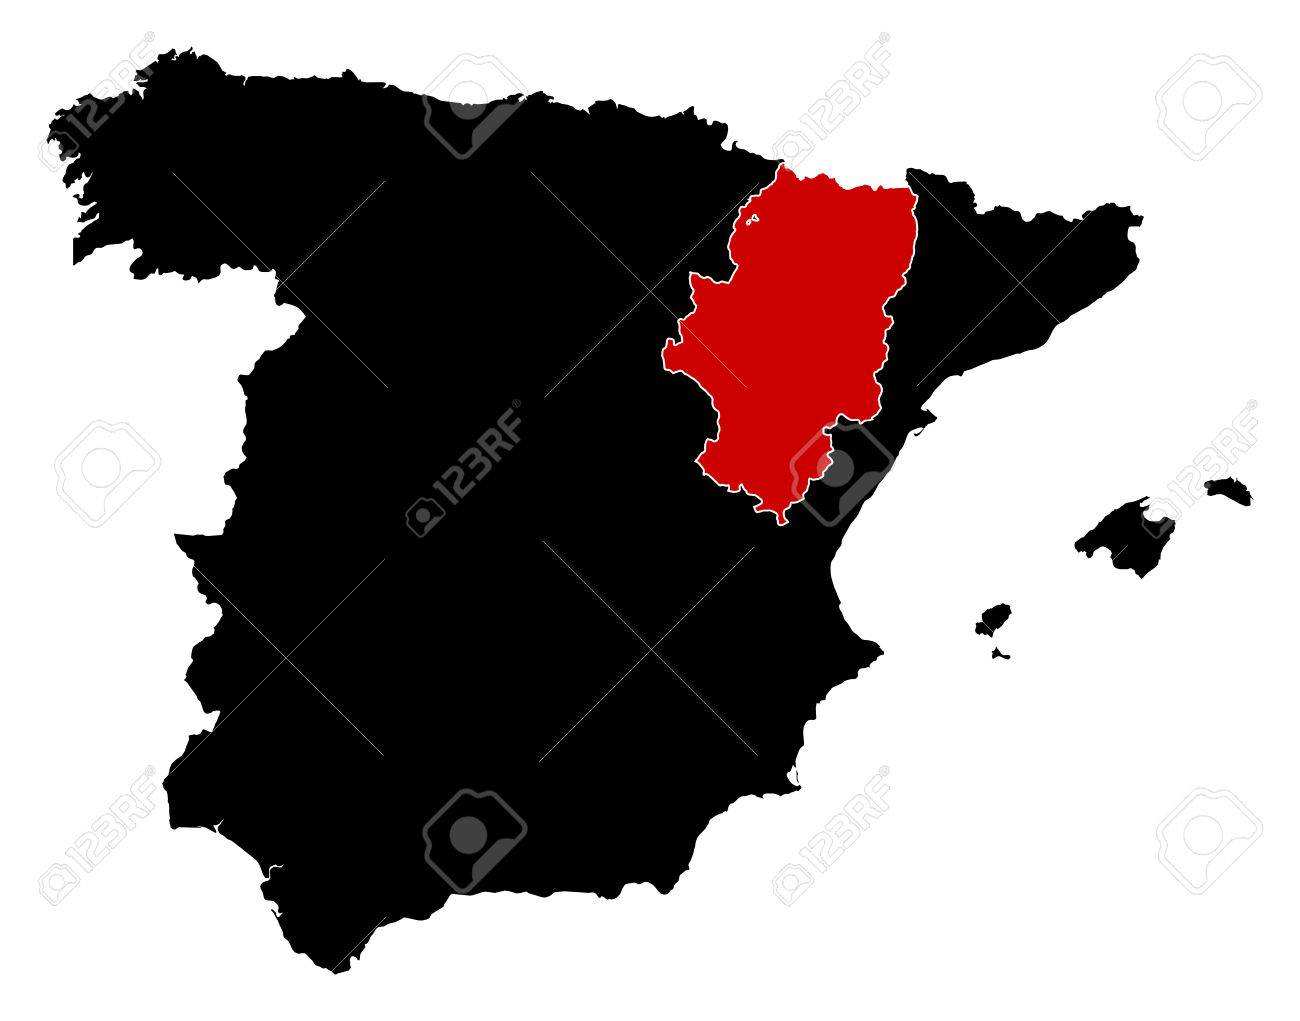 Map Of Spain In Black Aragon Is Highlighted In Red Royalty Free